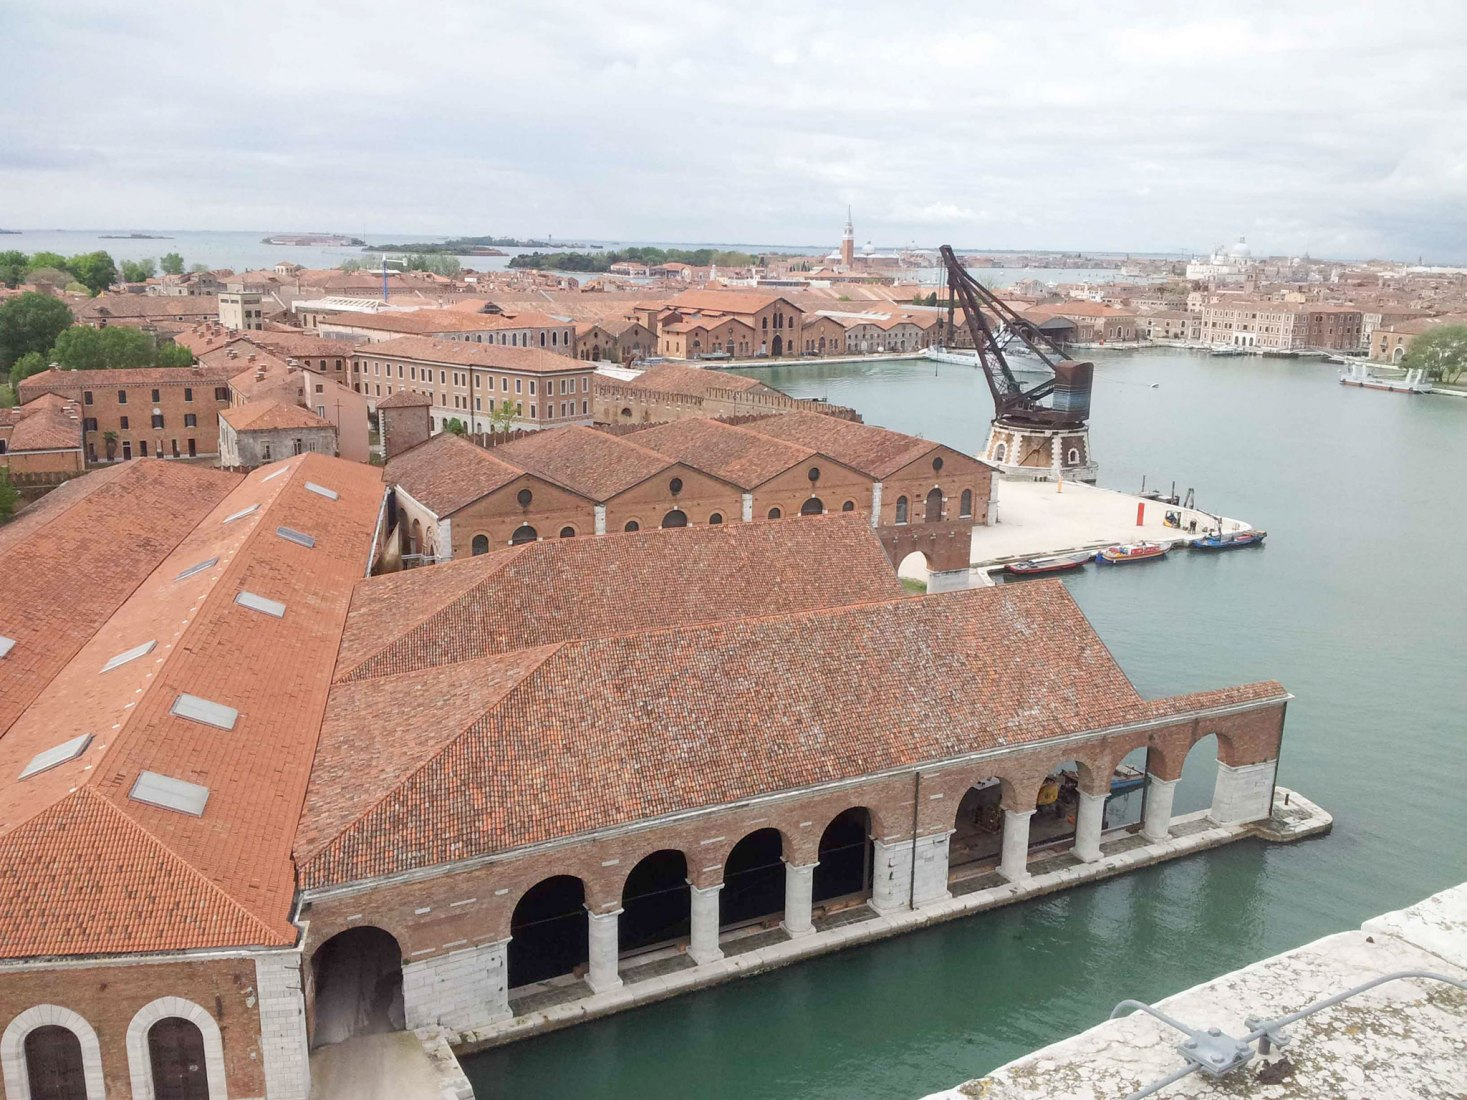 Aerial view of Arsenale. Photography © Andrea Avezzù courtesy of La Biennale di Venezia.